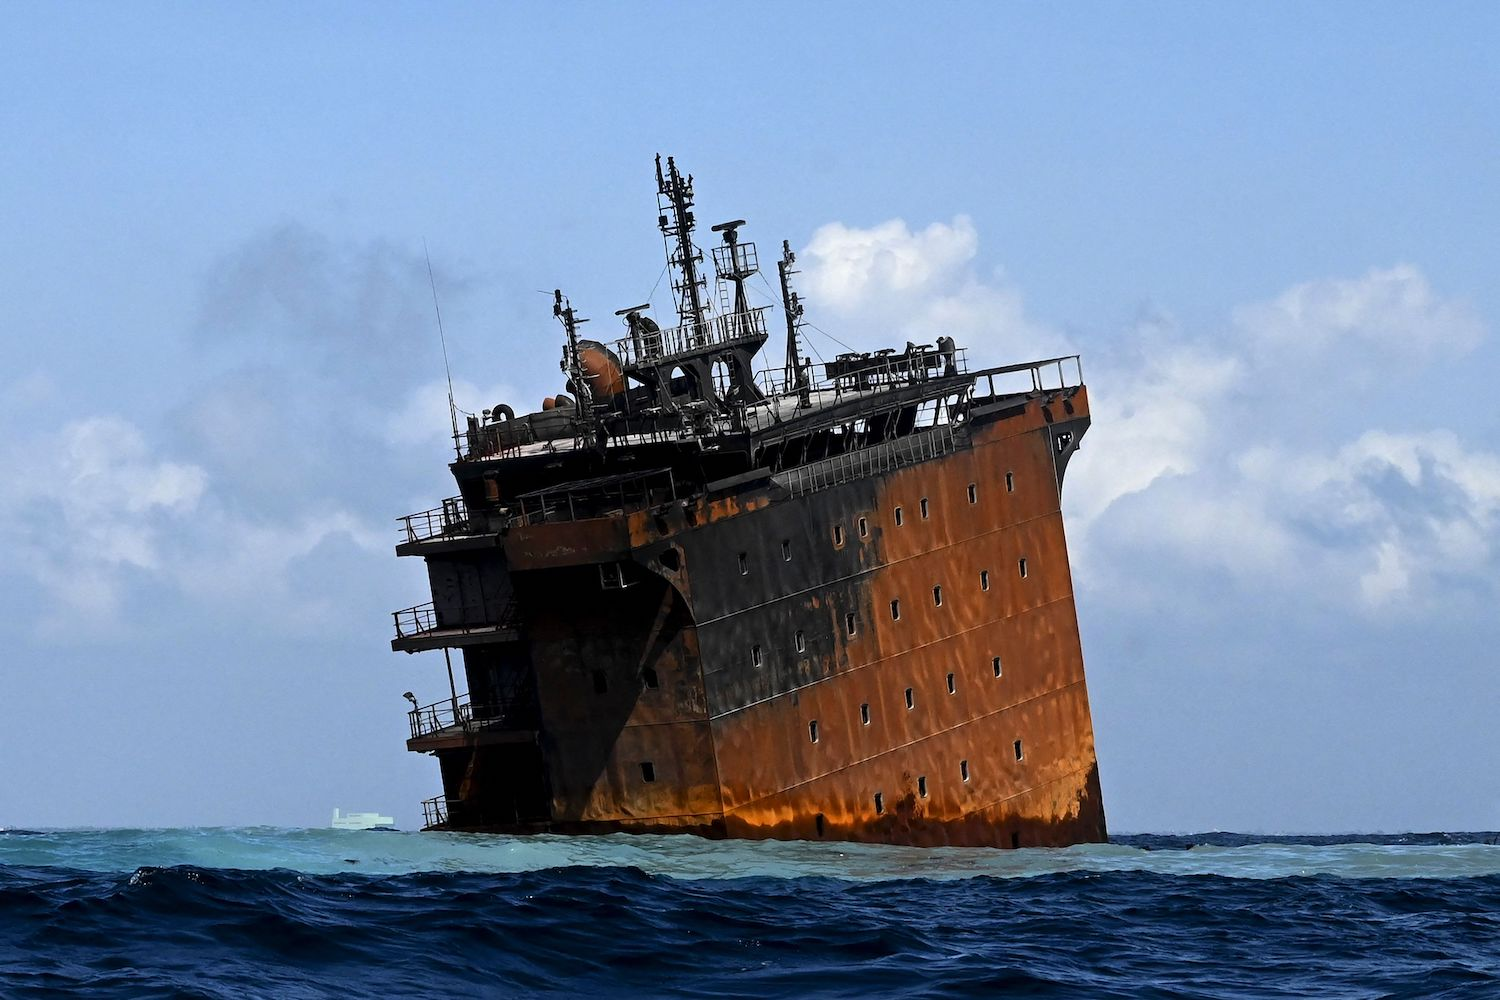 Singapore-registered container ship <em>MV X-Press Pearl</em> sinks after burning for almost two weeks, just outside the harbor of Colombo, Sri Lanka, on June 2.